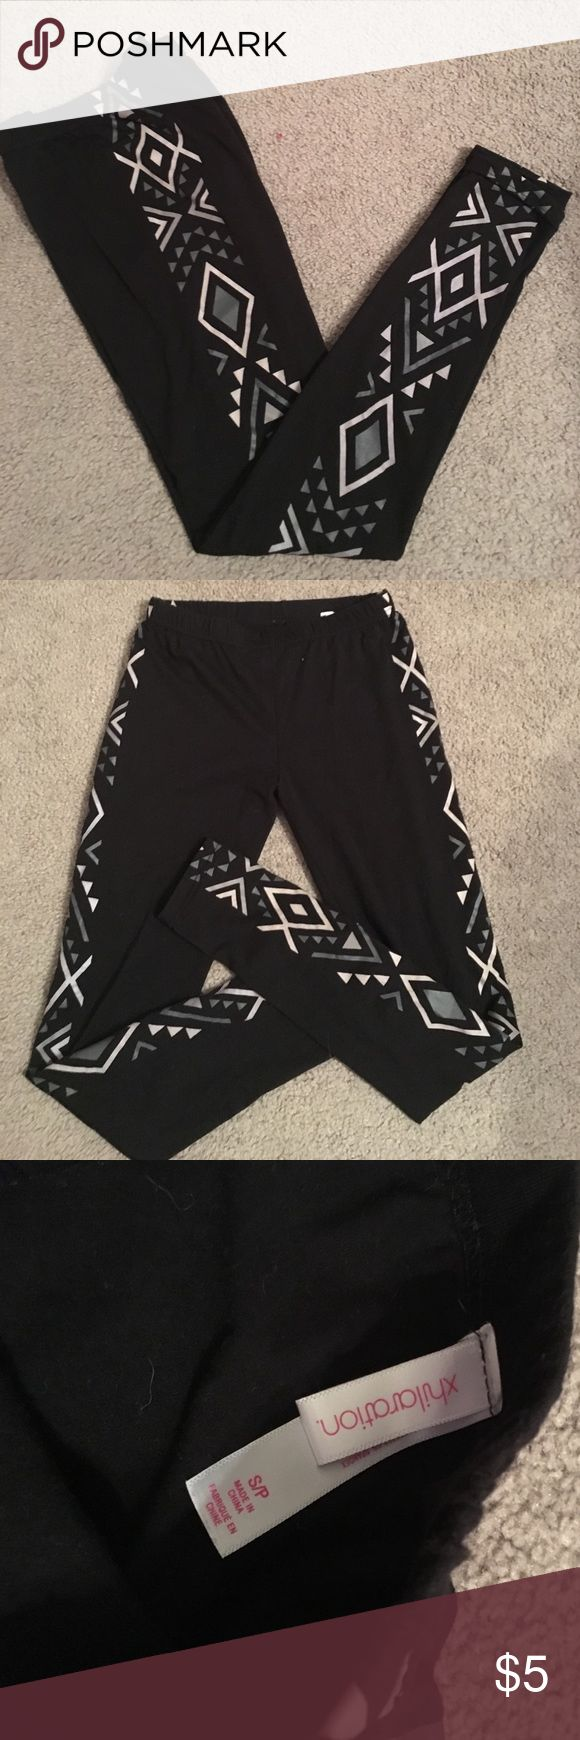 Aztec print leggings Black leggings with Aztec design on each side. Size small. In excellent condition. Xhilaration Pants Leggings